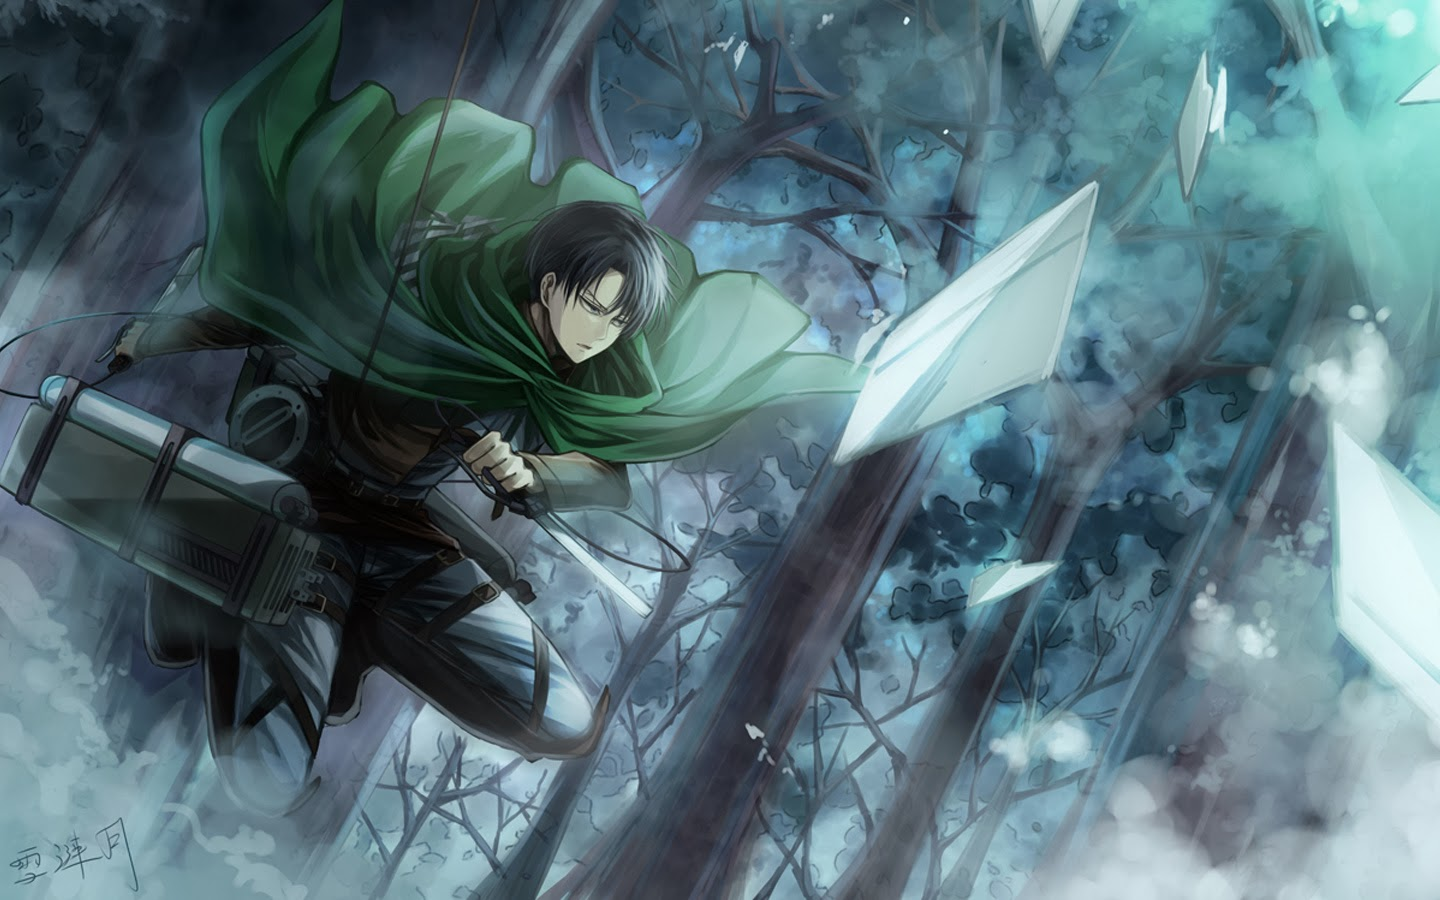 49] Attack on Titan Wallpaper HD on WallpaperSafari 1440x900